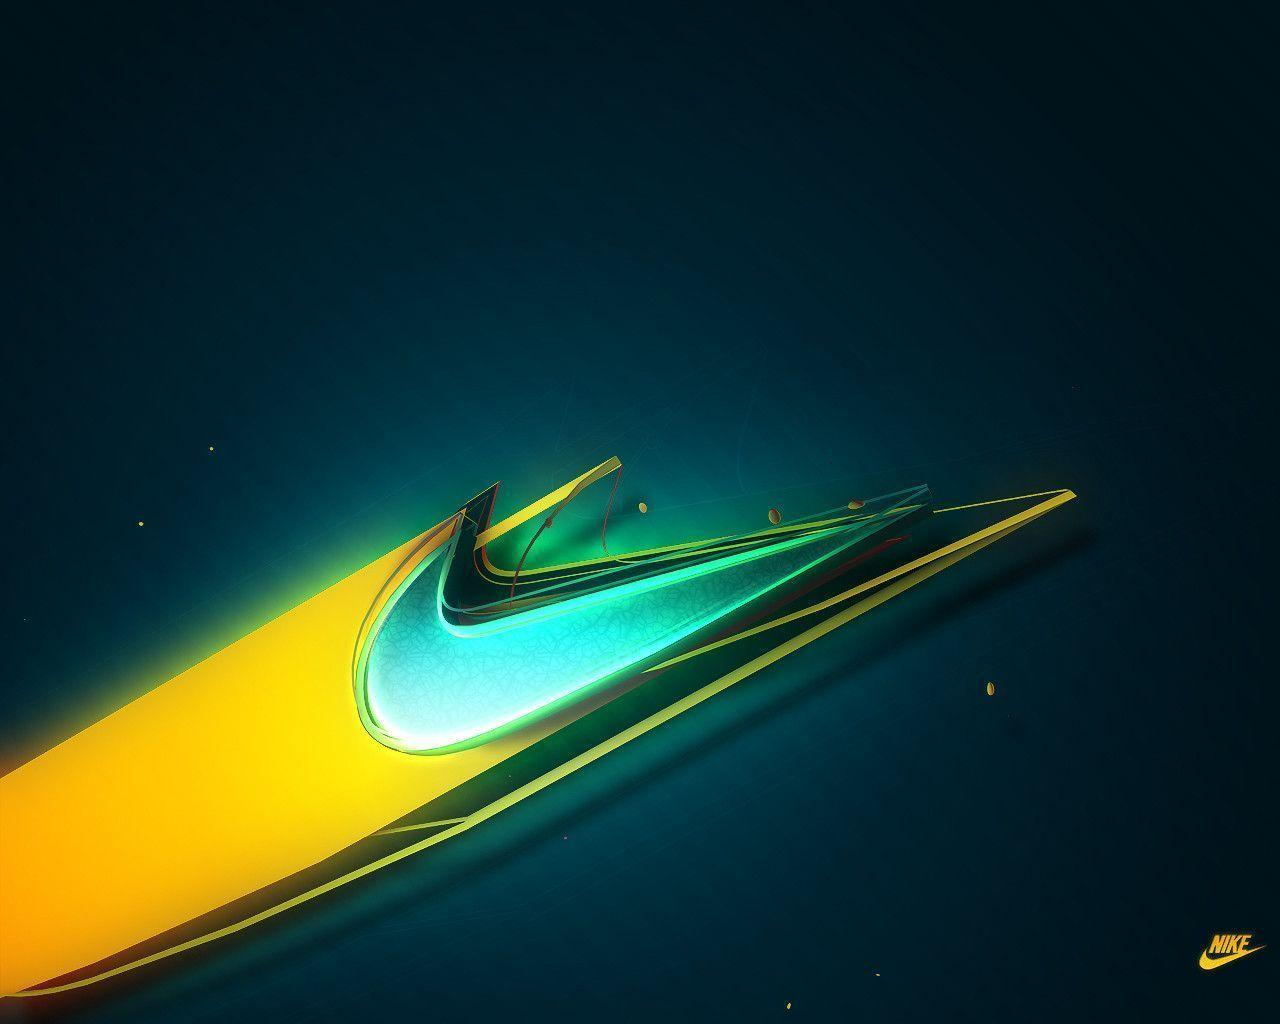 nike wallpapers cool white - photo #19